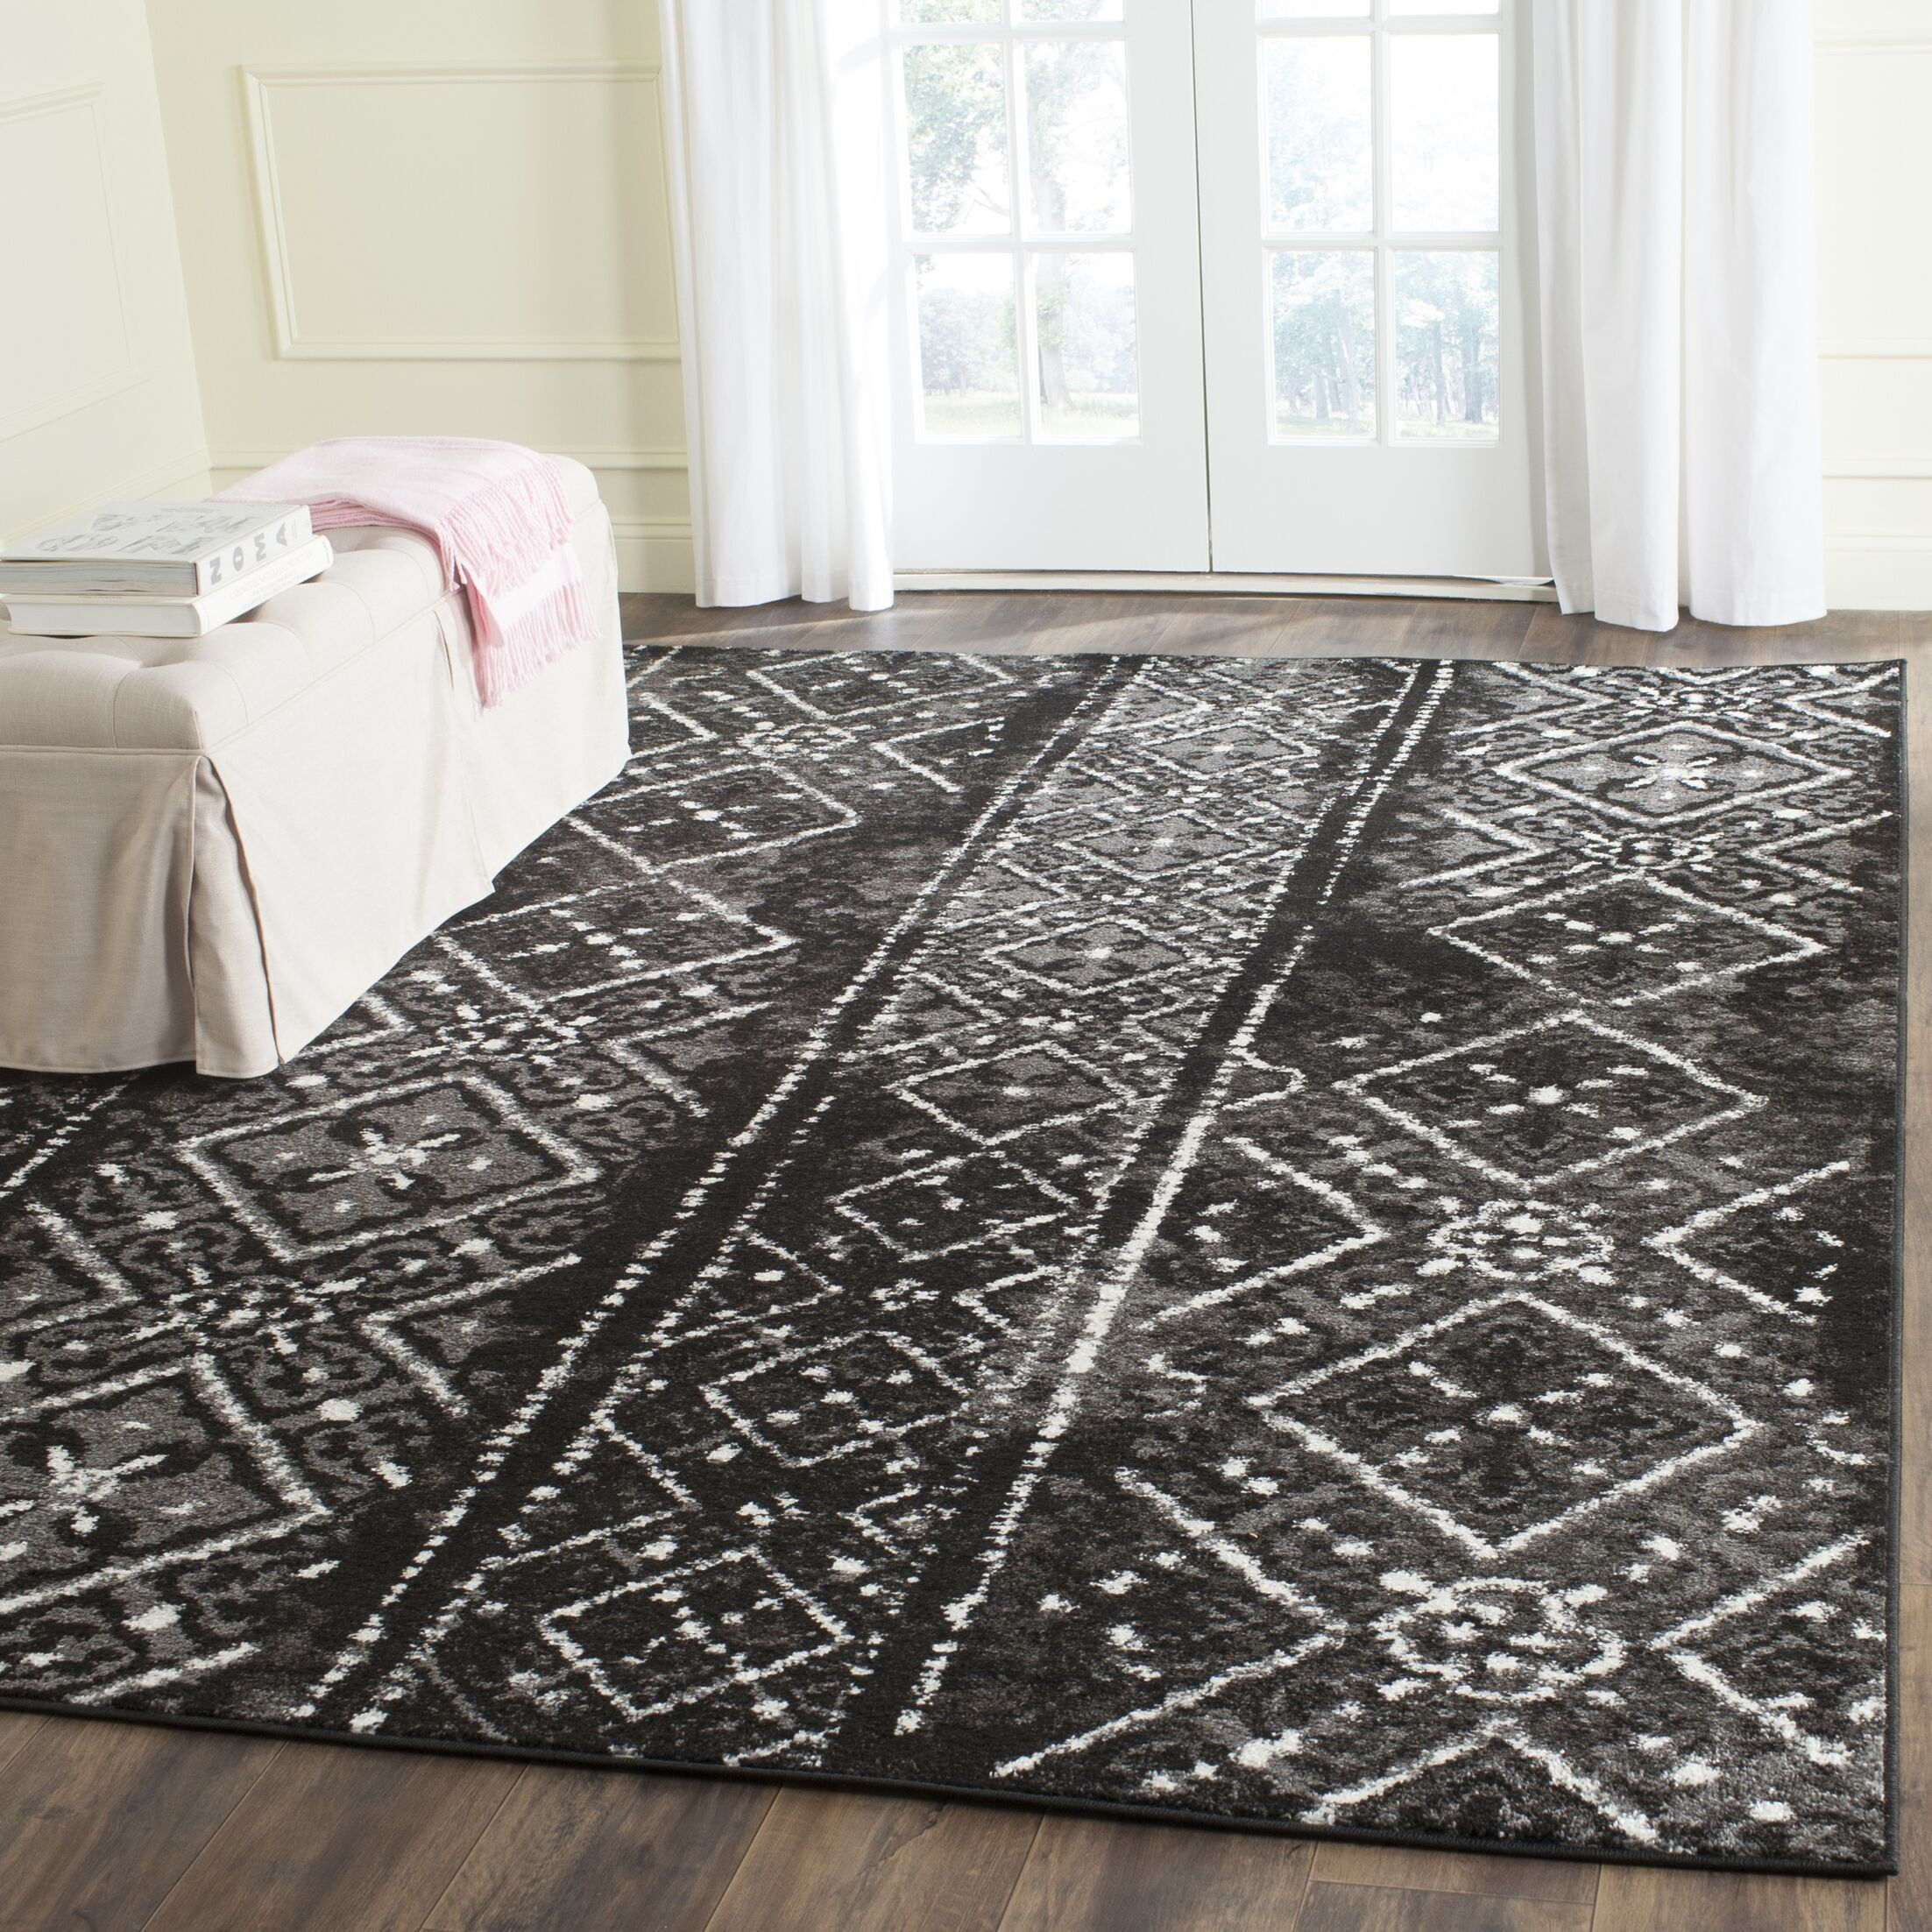 Norwell Black/Silver Area Rug Rug Size: Rectangle 9' x 12'